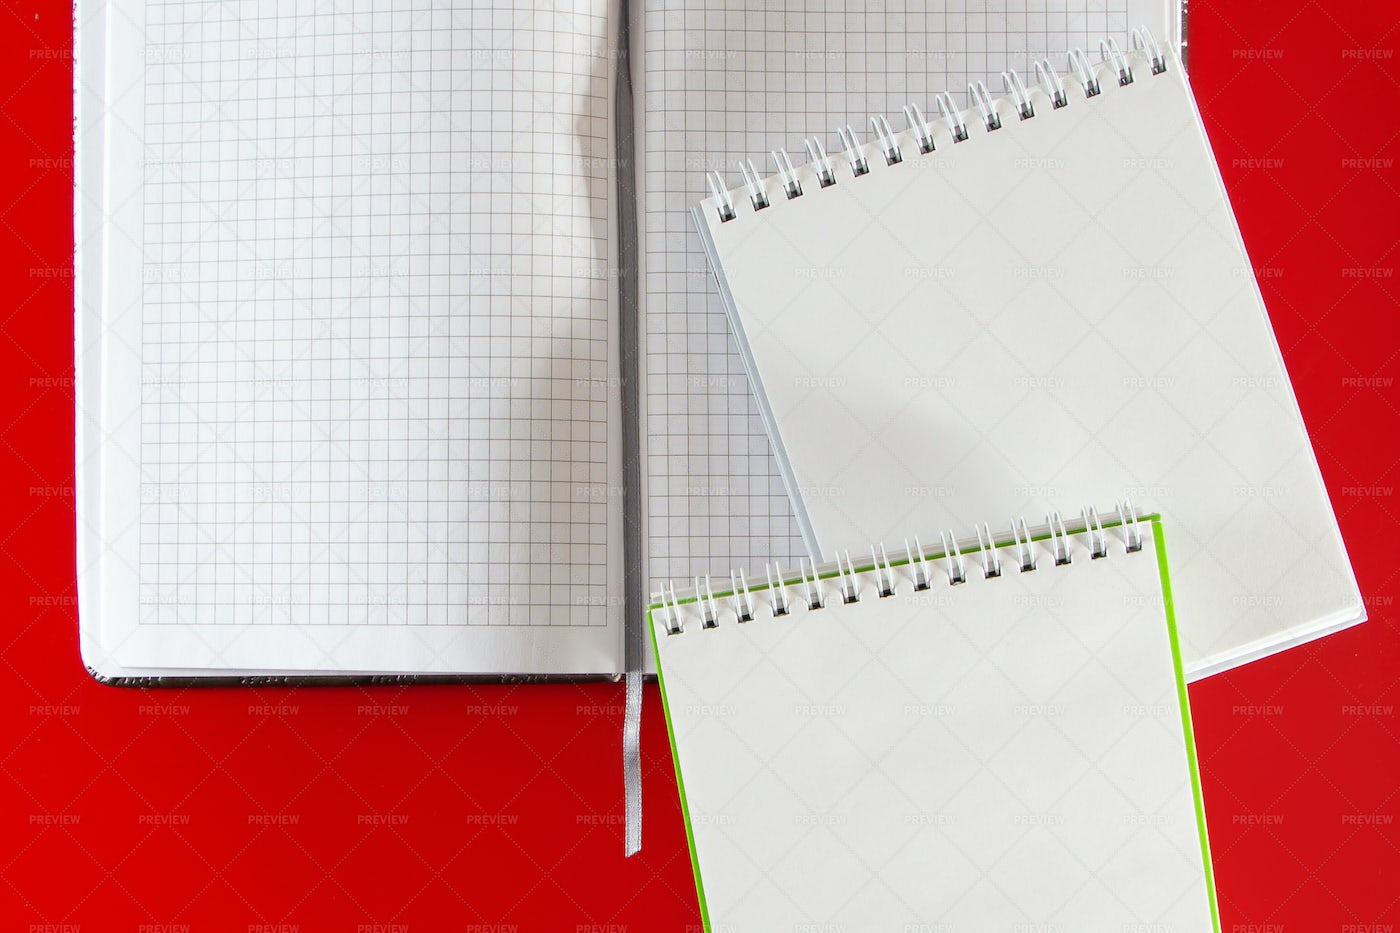 Office Supplies On Red: Stock Photos